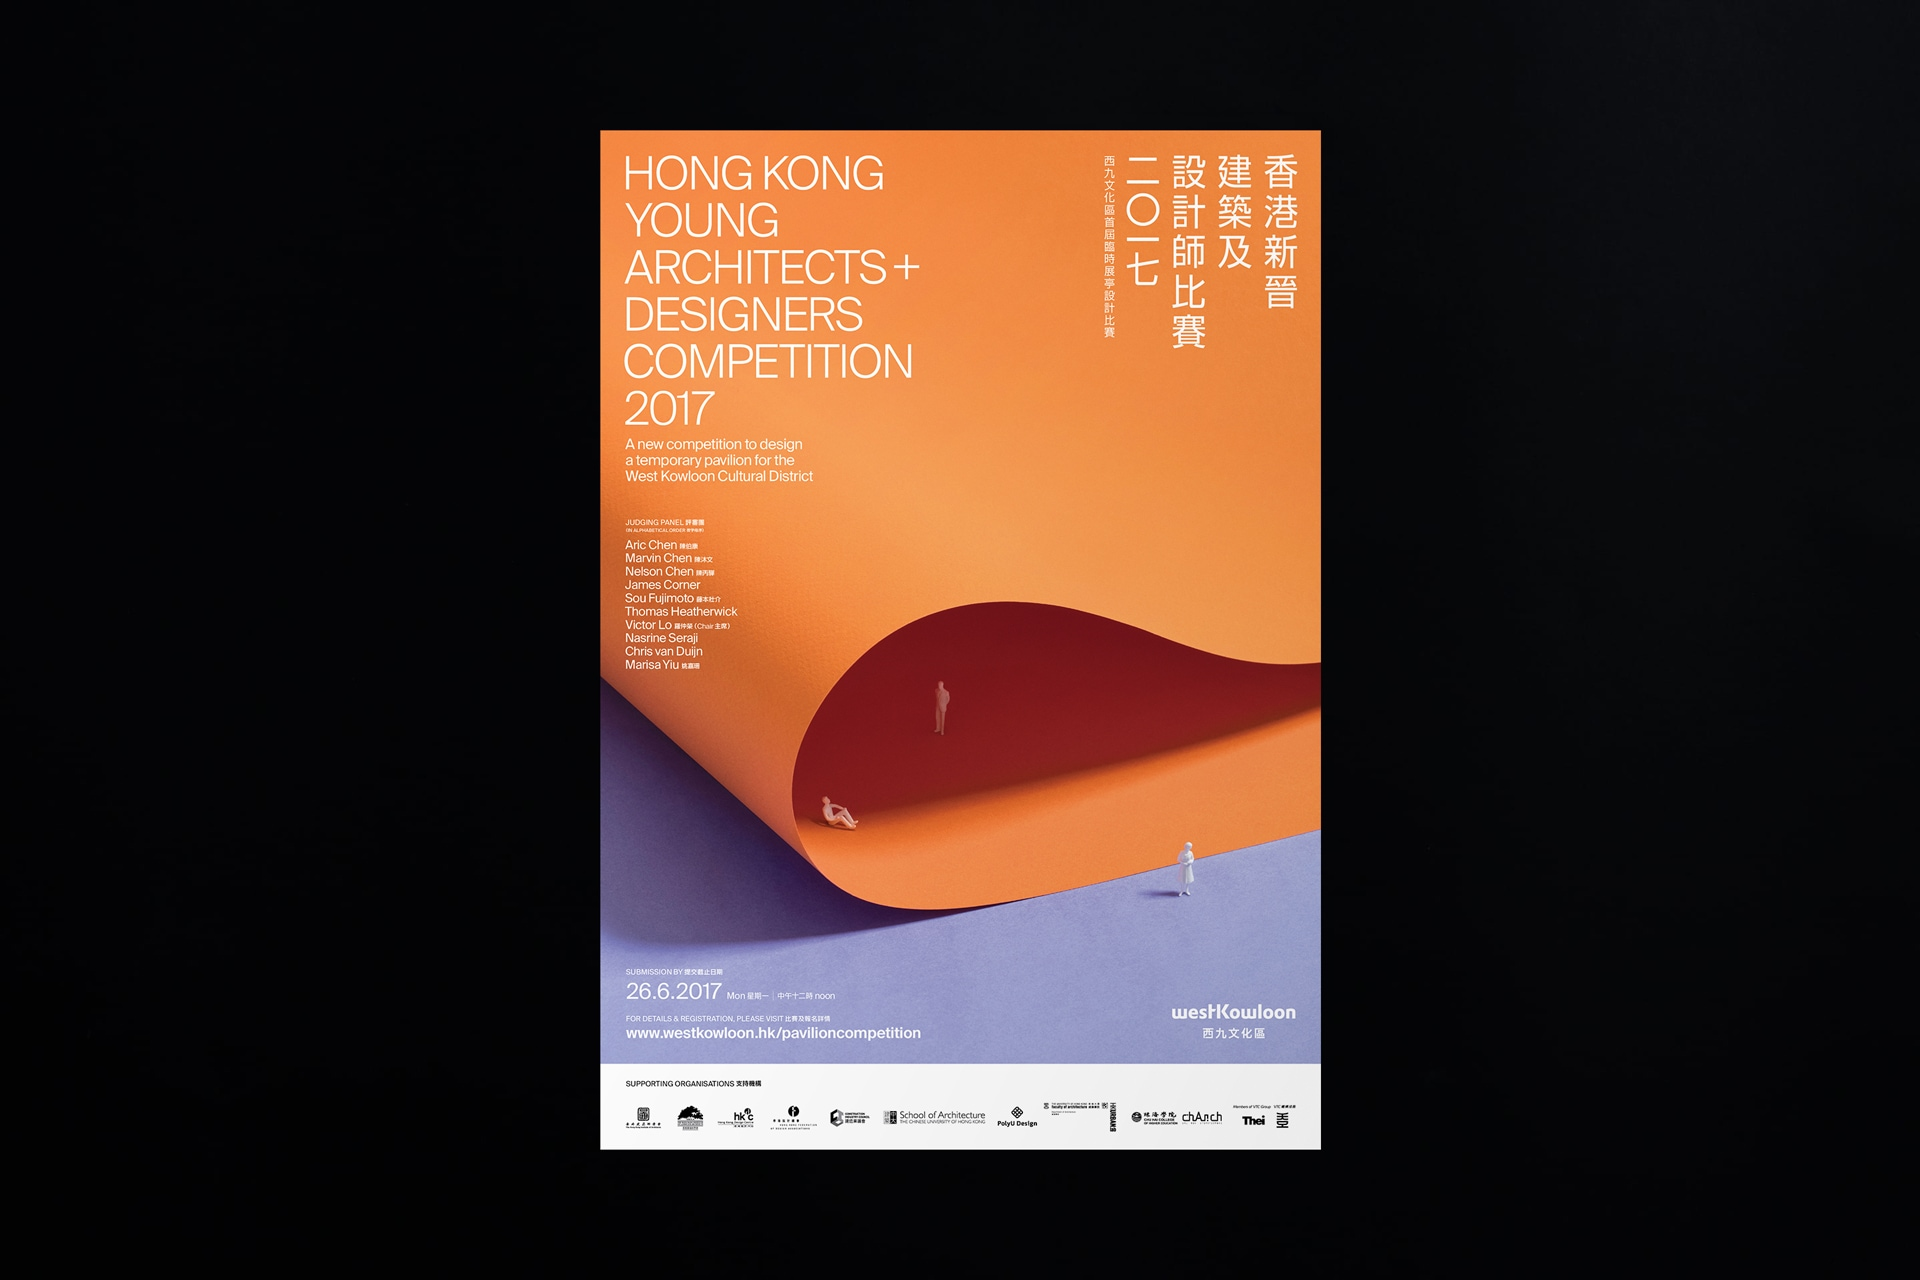 hong-kong-young-architects-designers-competition-2017_04